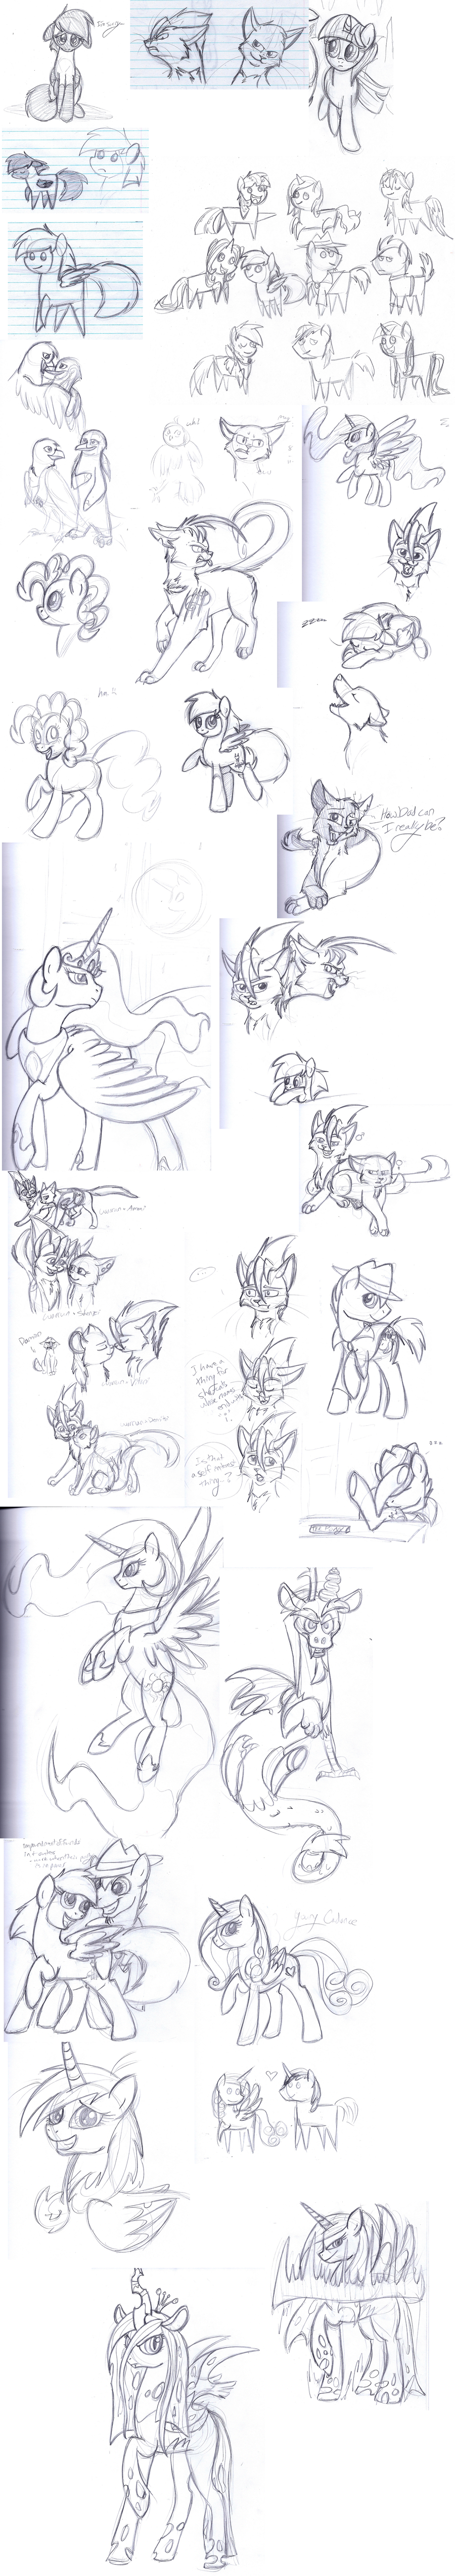 Biweekly School Sketches 16 by TickleMeFrosty